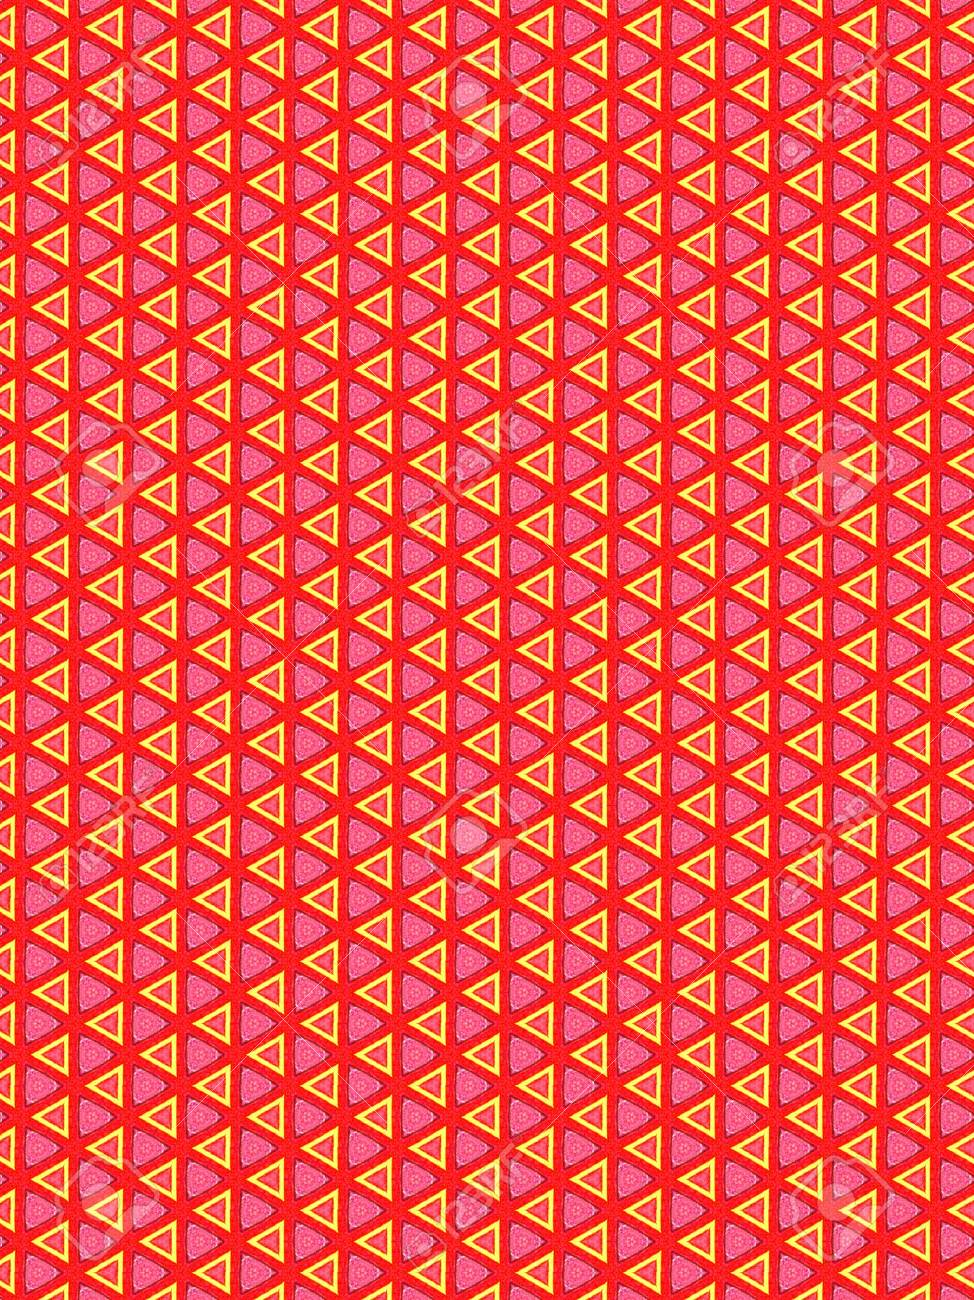 Decorative wallpaper design - abstract background Stock Photo - 7073584